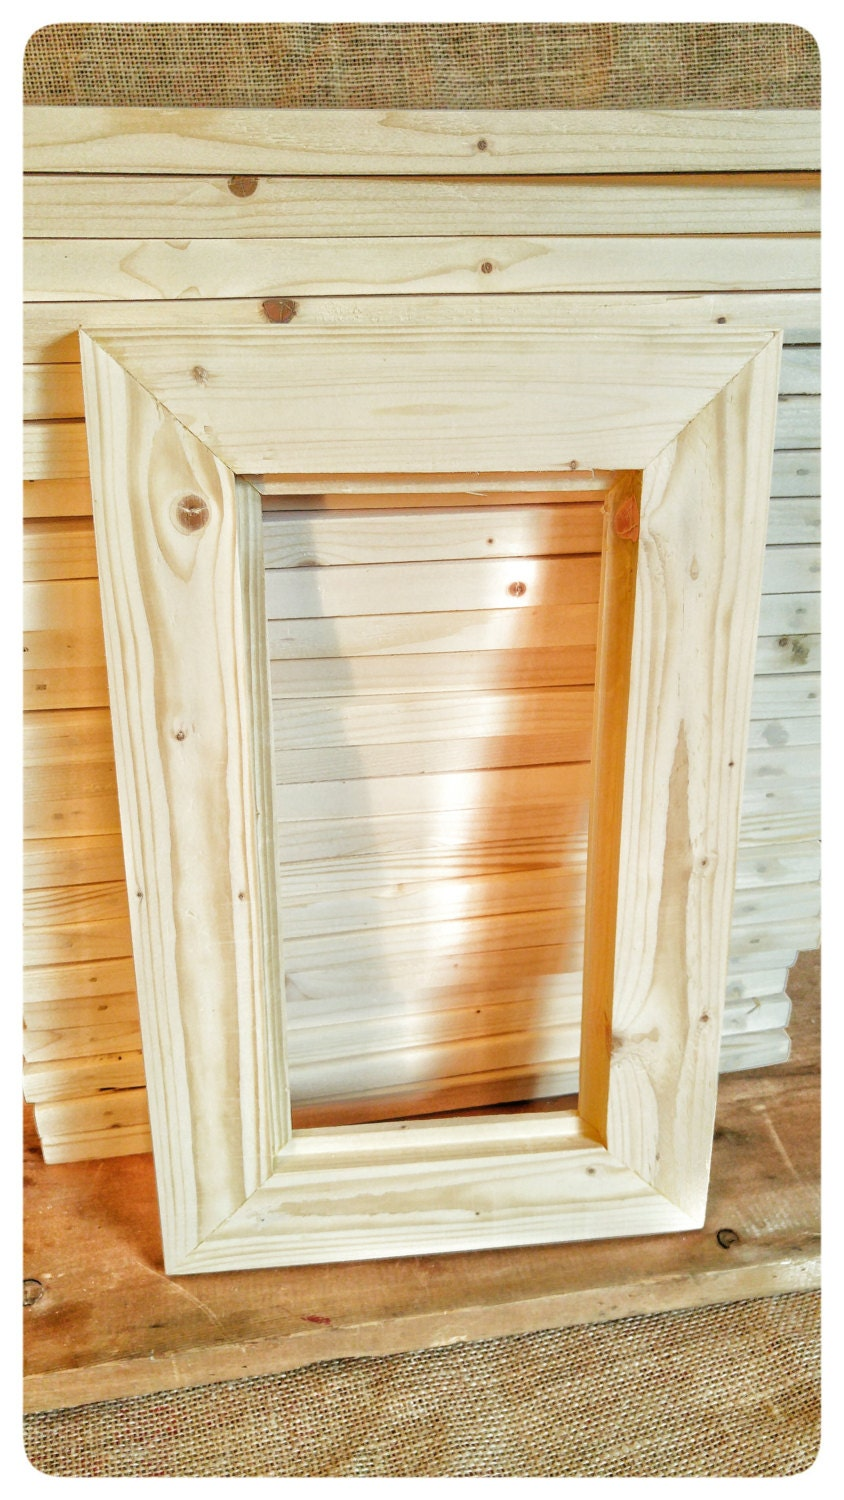 25 wood frames no hardware or glass bulk wood frames 5x10 wood sold by swproducts jeuxipadfo Choice Image